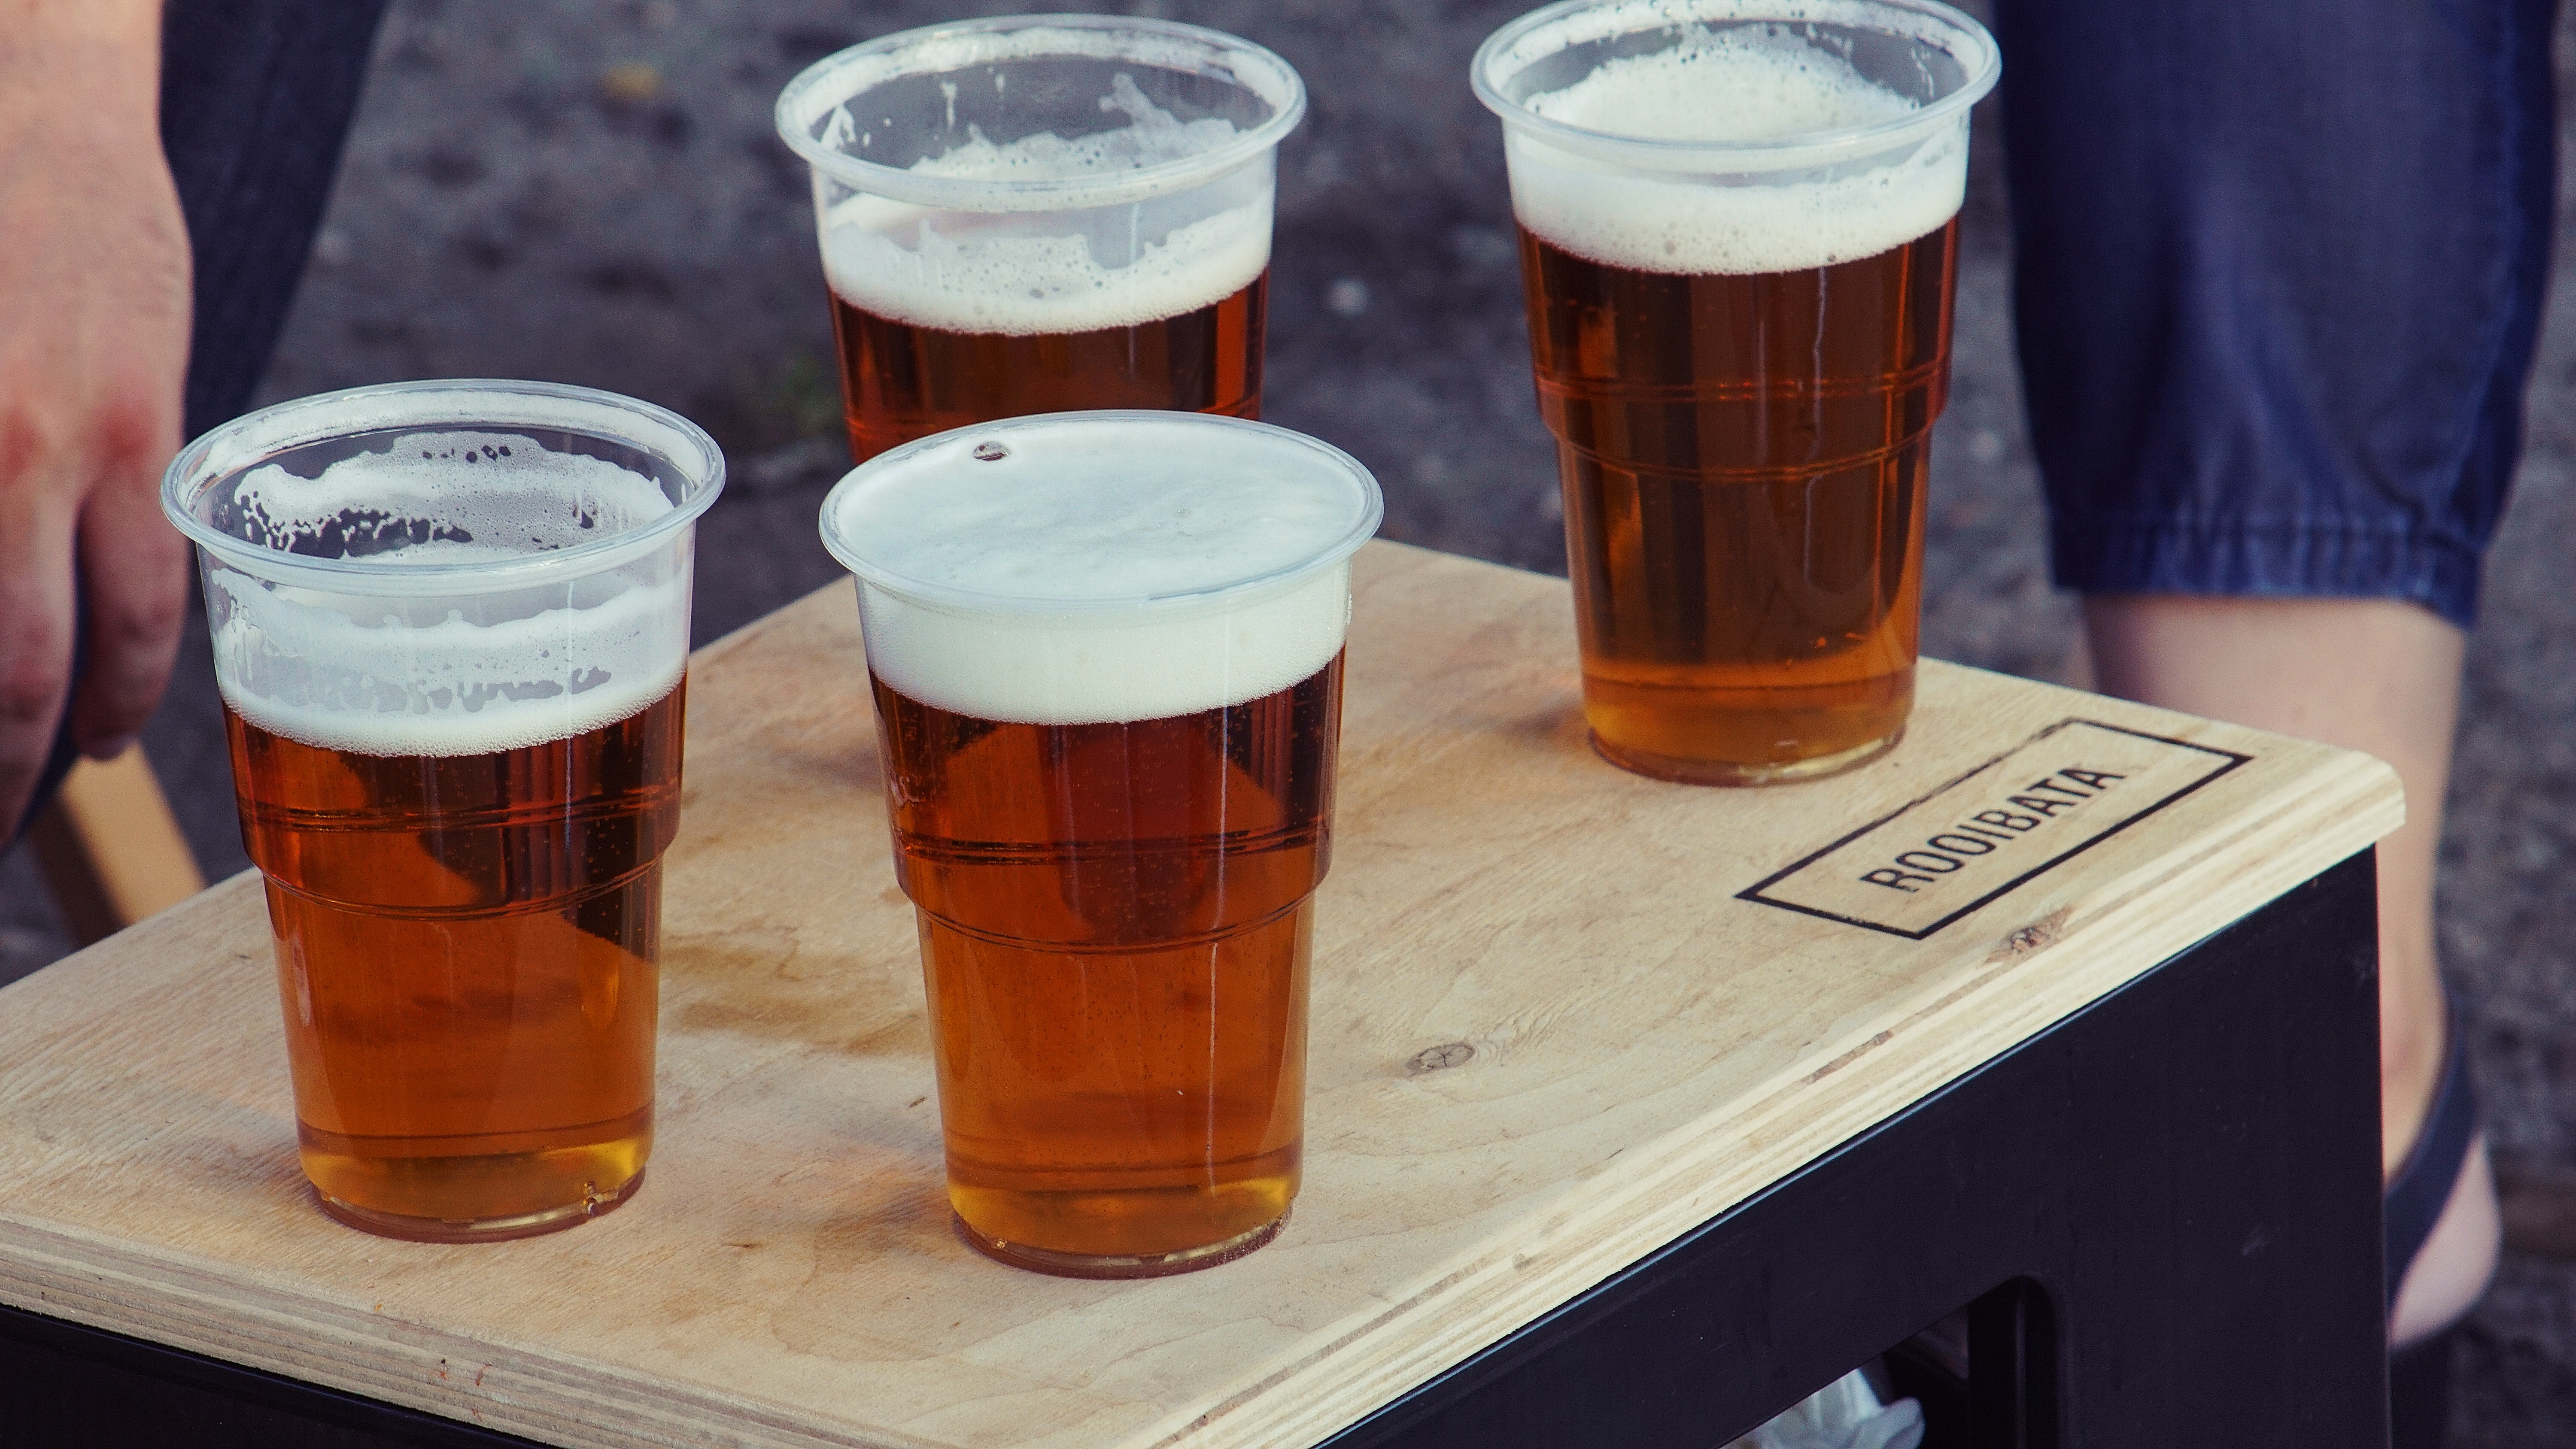 A tray containing beer in disposable cups